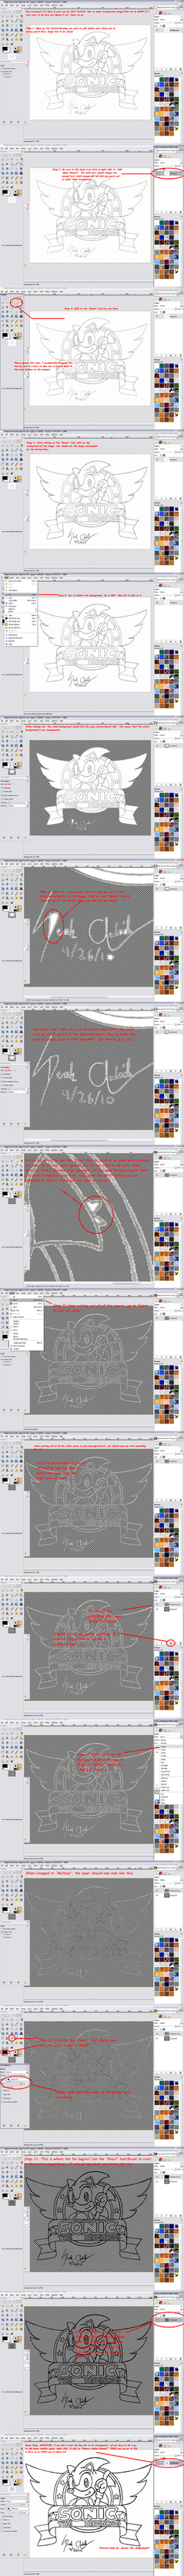 How to make line art in GIMP by FirebirdPhoenix87